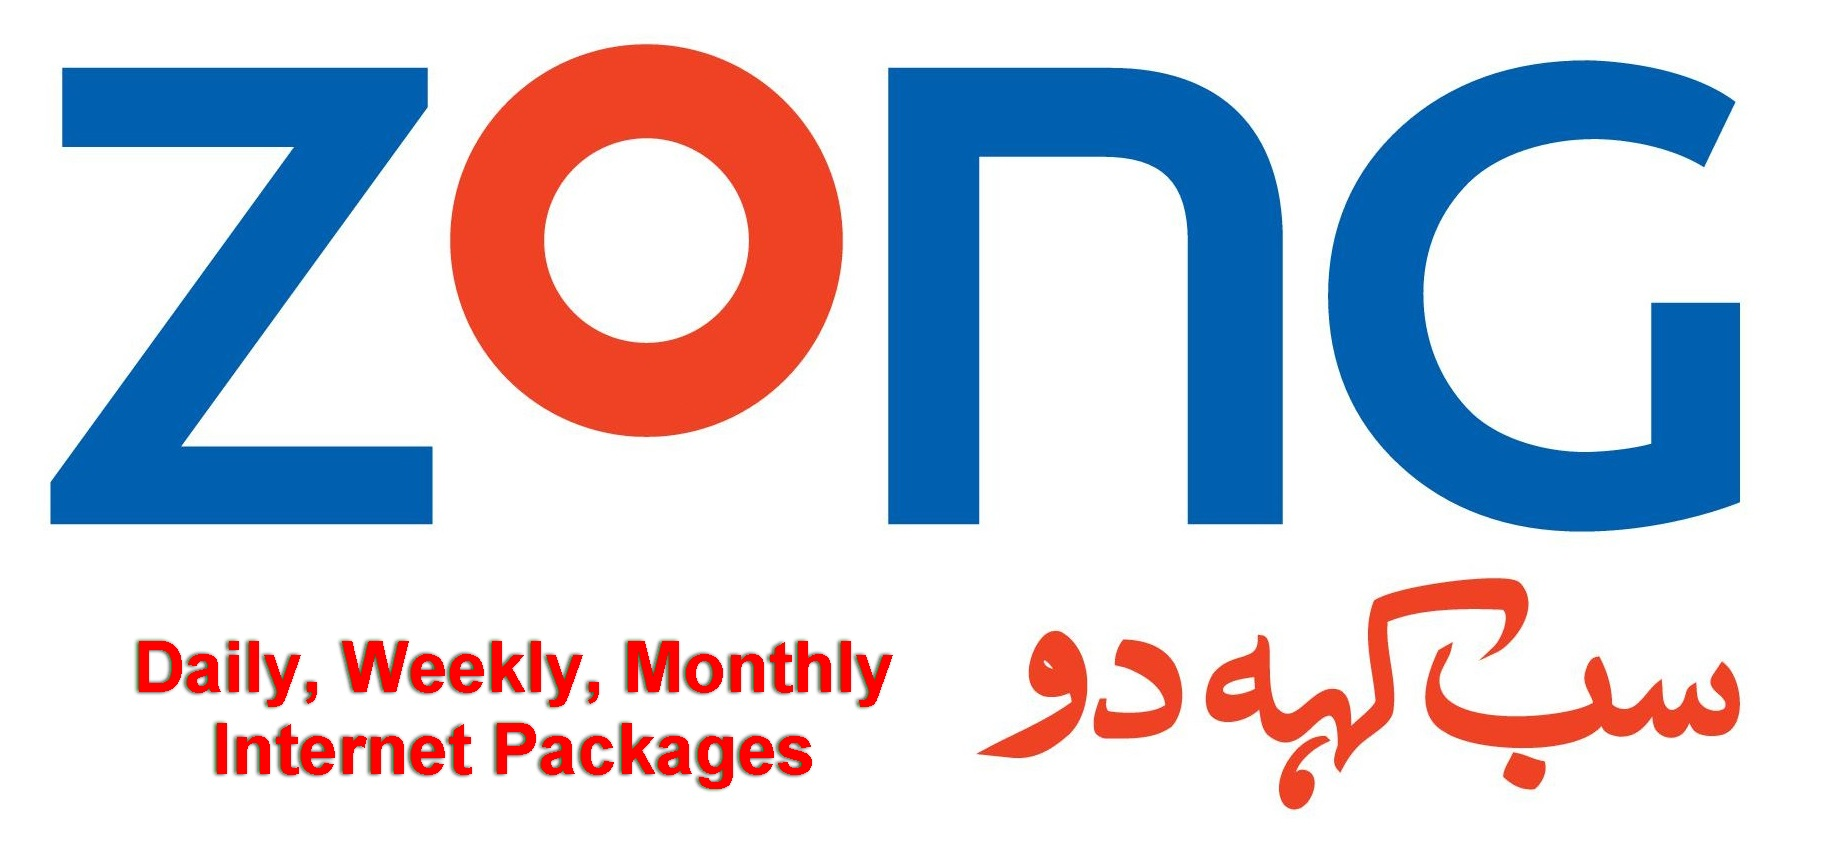 Zong Daily And Weekly, Monthly, Unlimited Internet Packages Detail